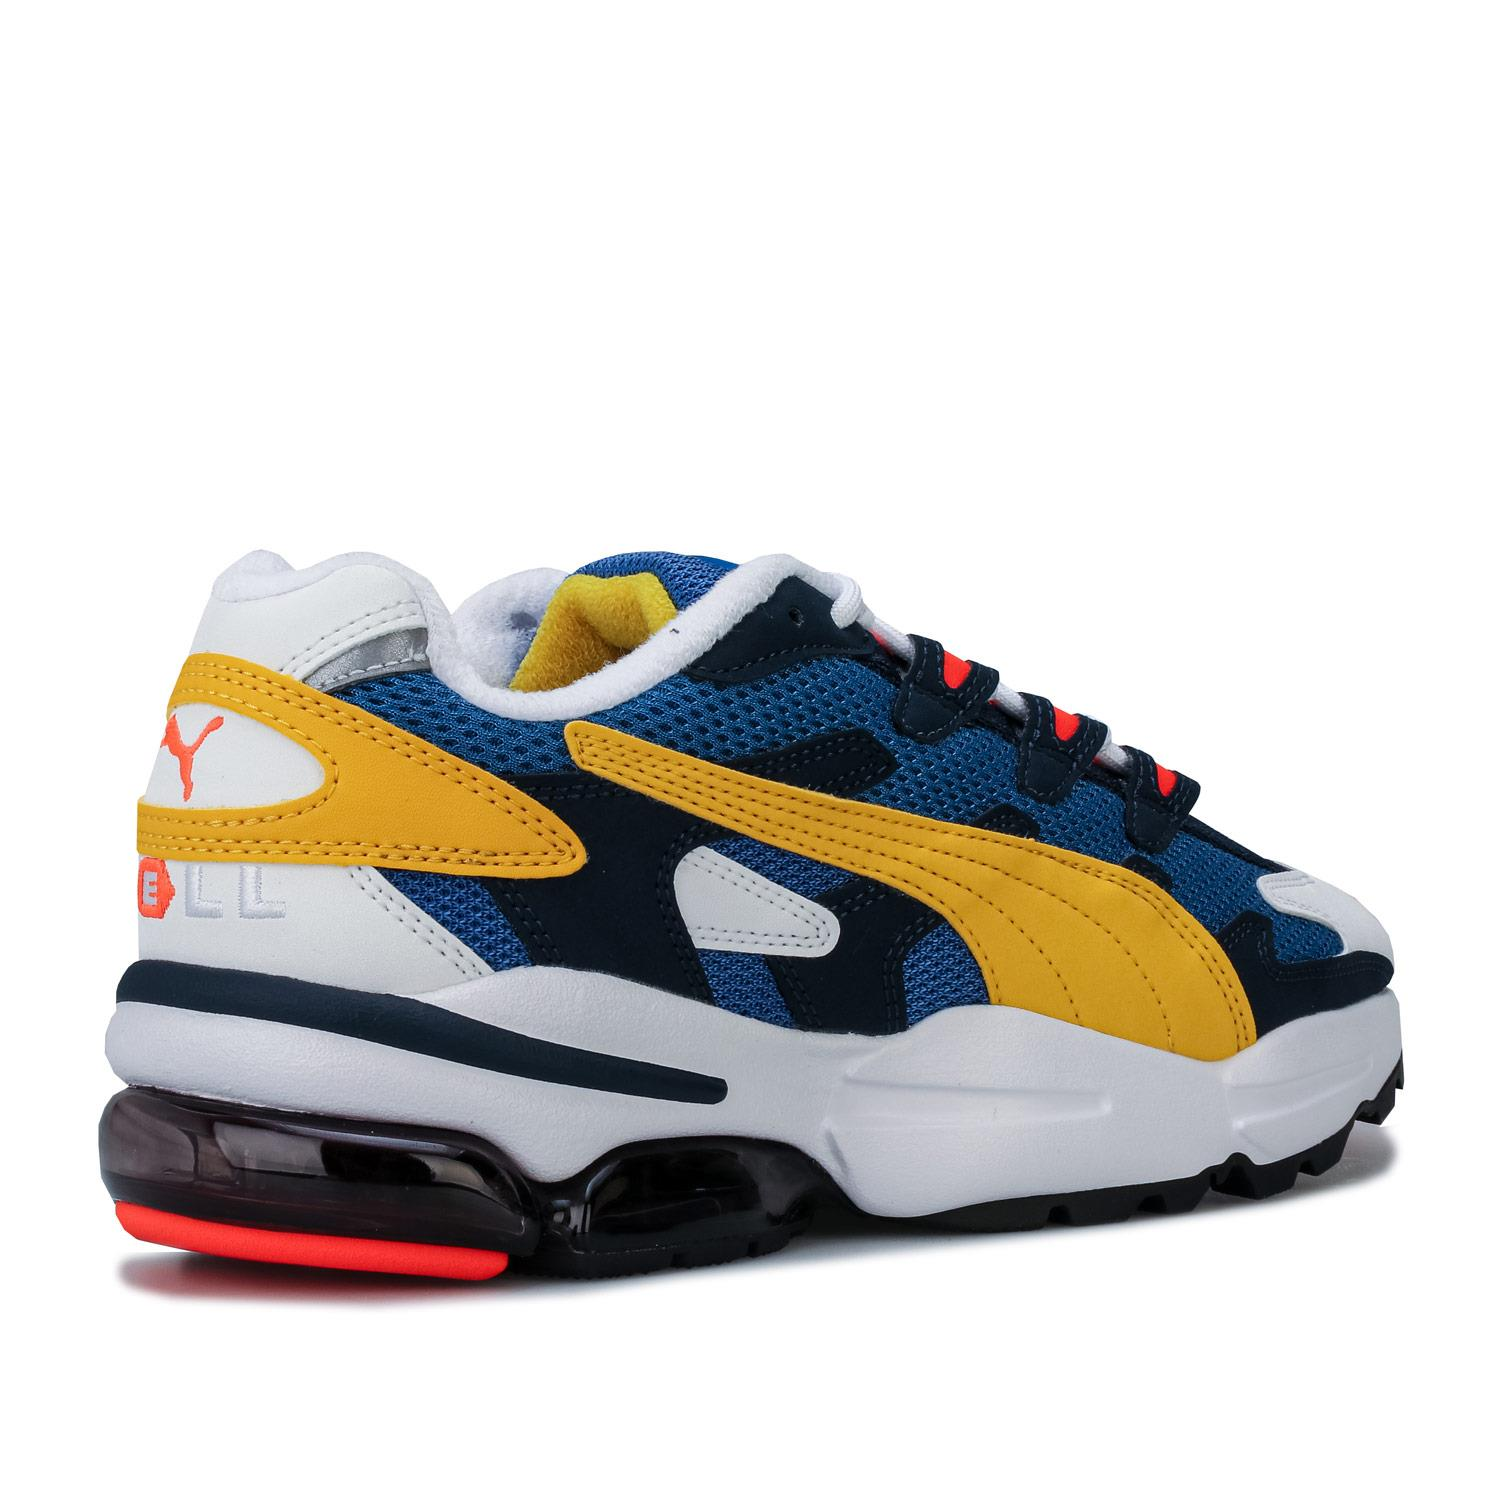 Mens-Puma-Cell-Alien-OG-Trainers-in-Blue-Green-Black-Red-Blue-and-Yellow thumbnail 10